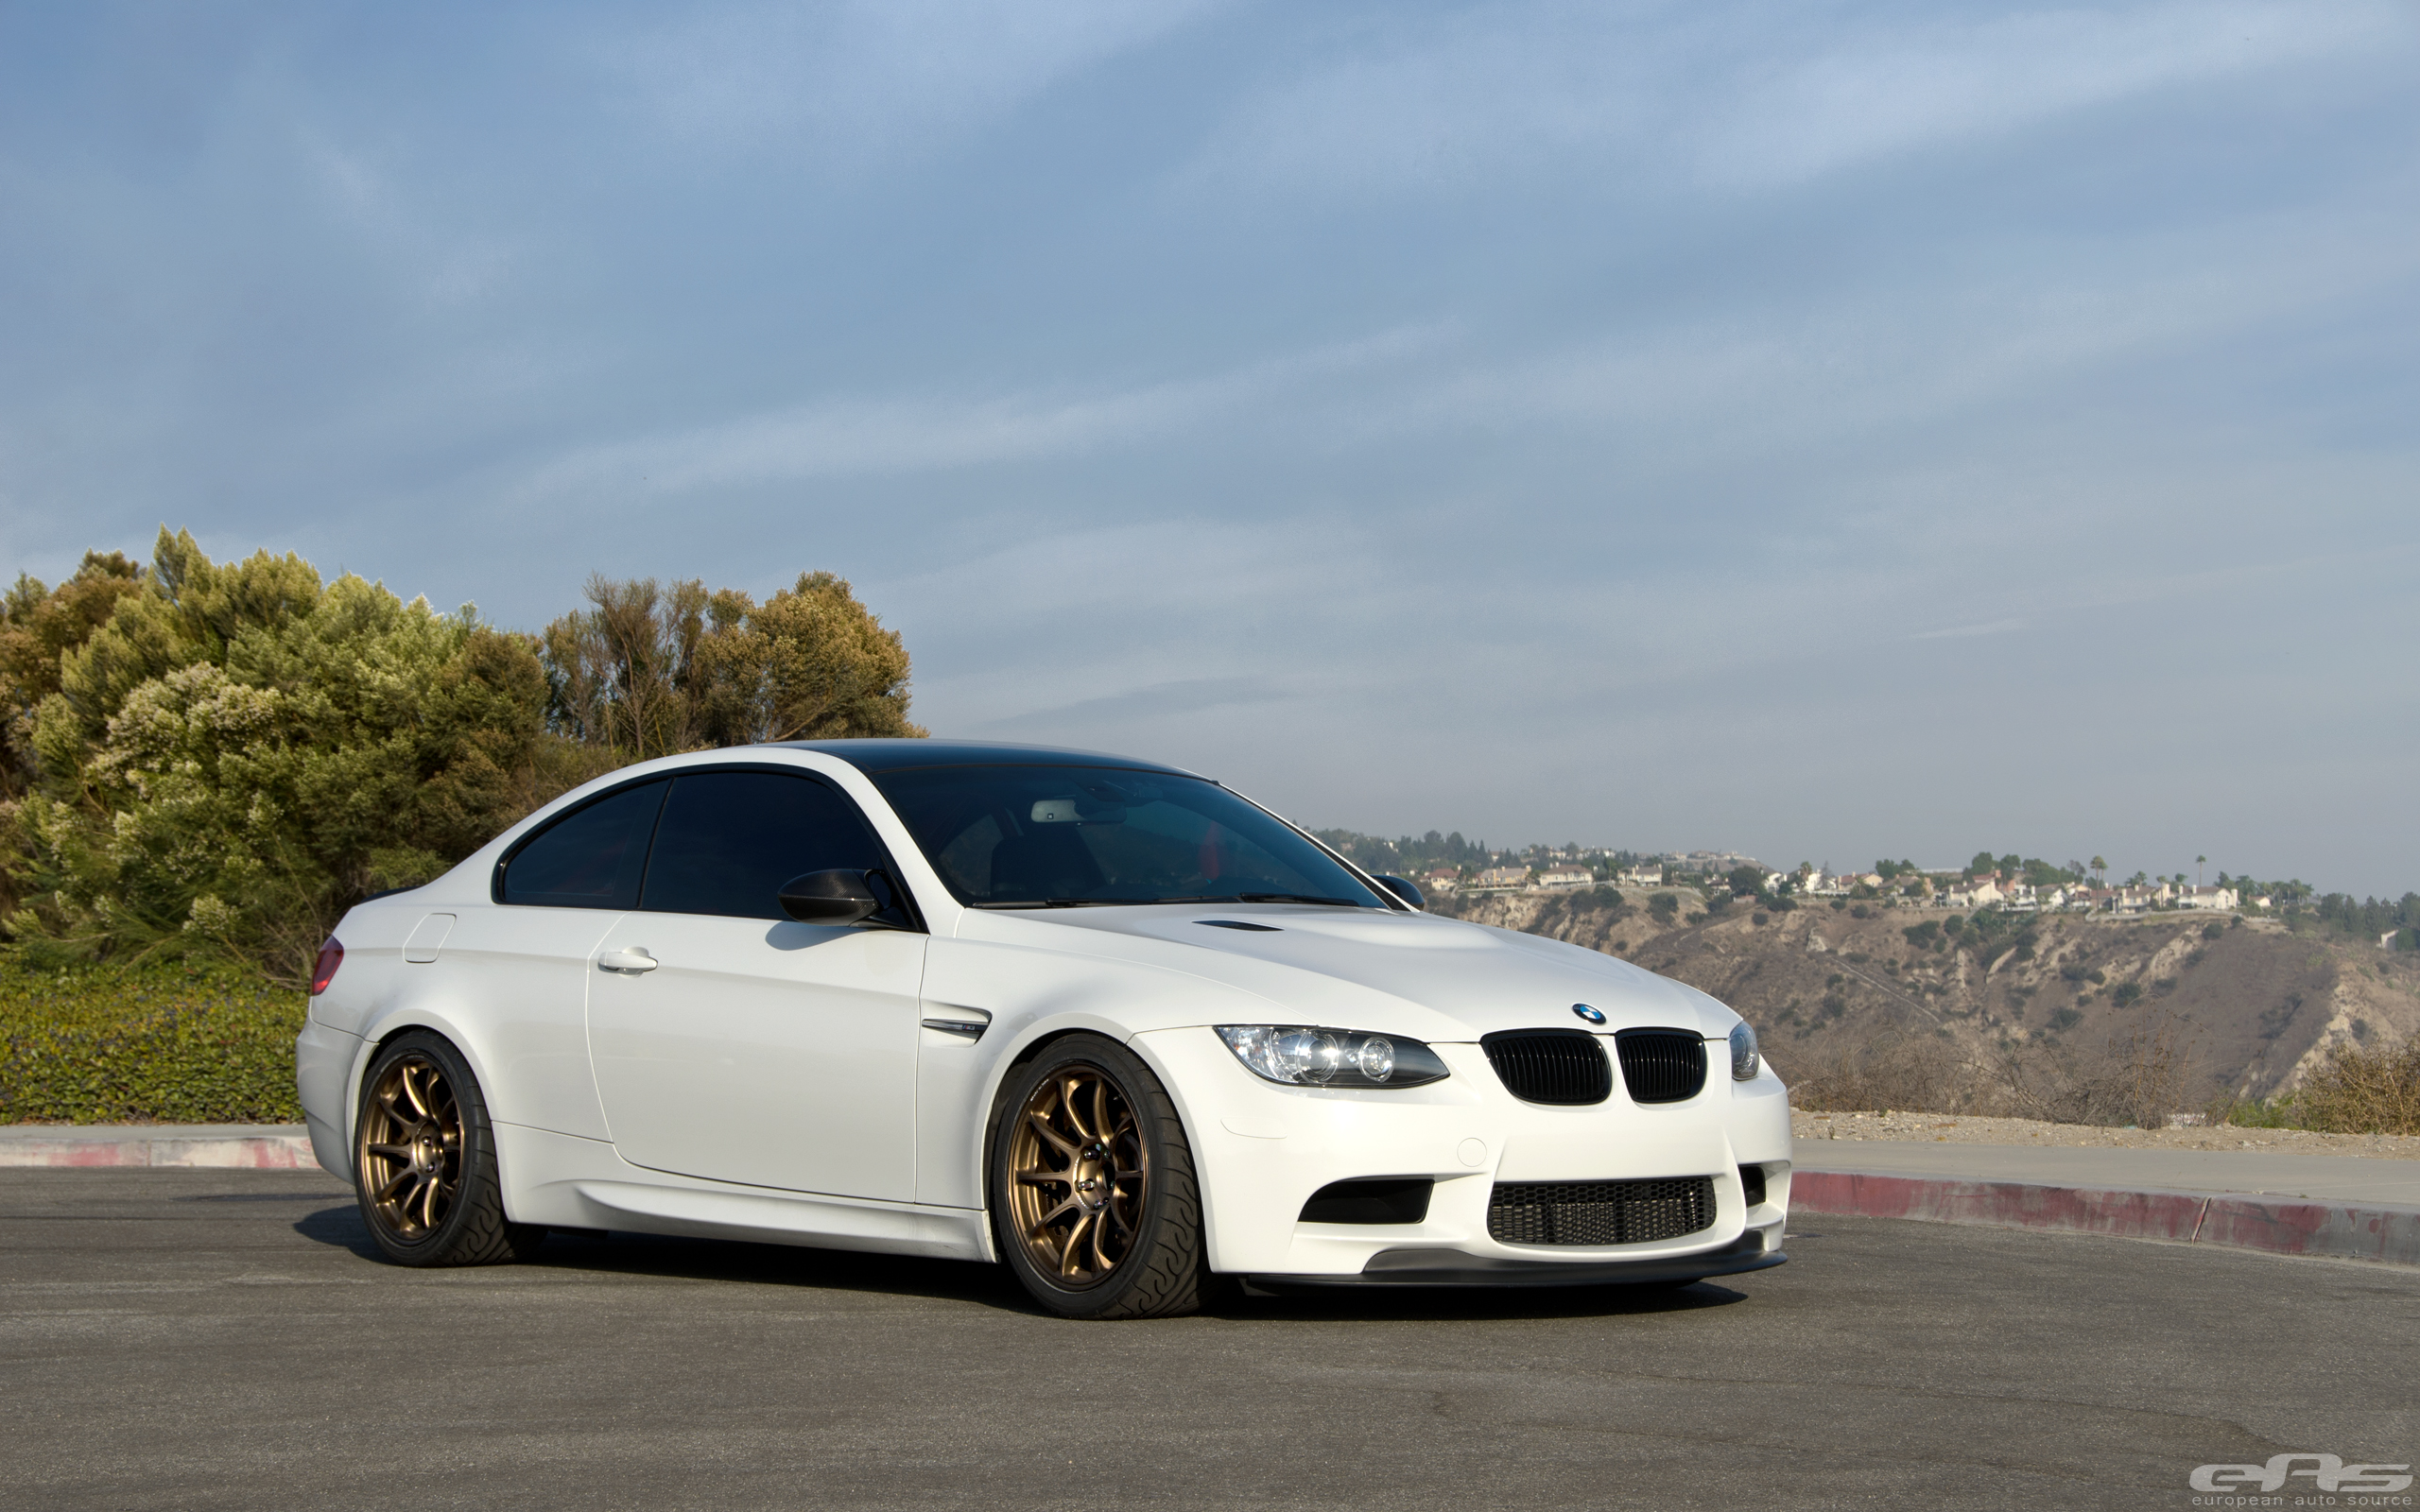 alpine white bmw e92 m3 is ready for the track owners manual bmw e90 service manual bmw e90 pdf